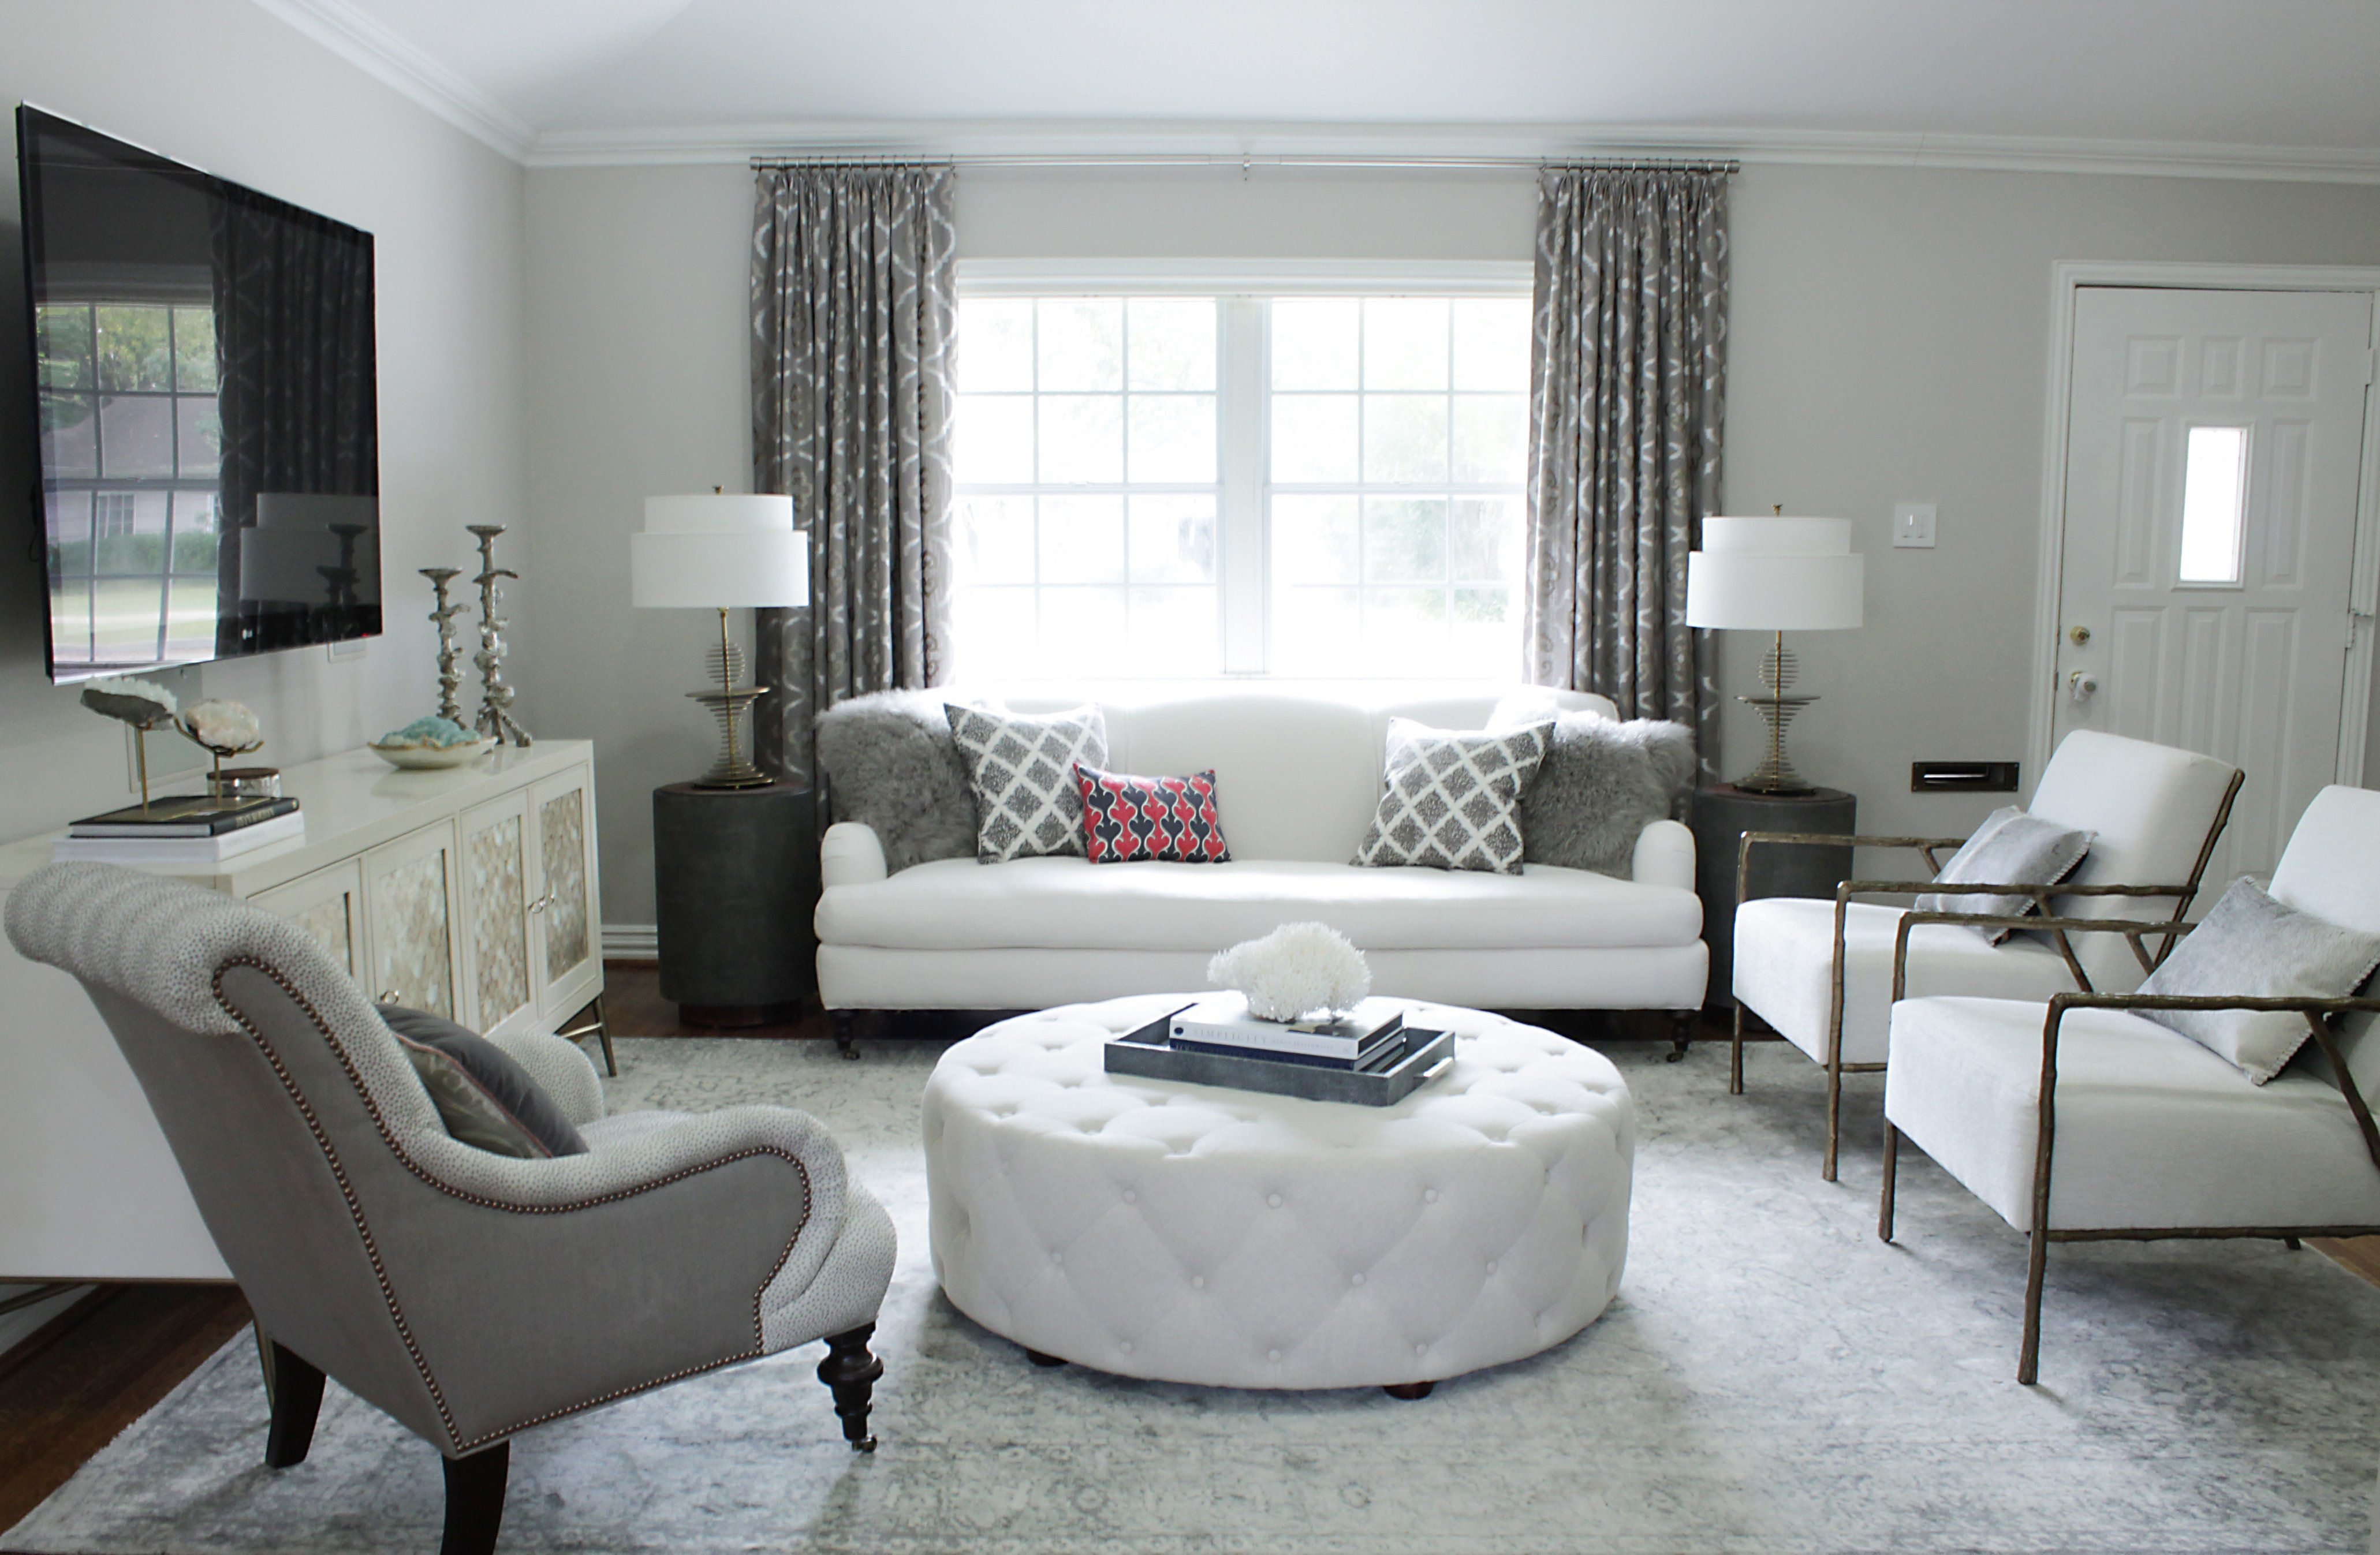 Small Living Room Makeover Ideas Beautiful before & after An Elegant Bud Friendly Living Room Makeover